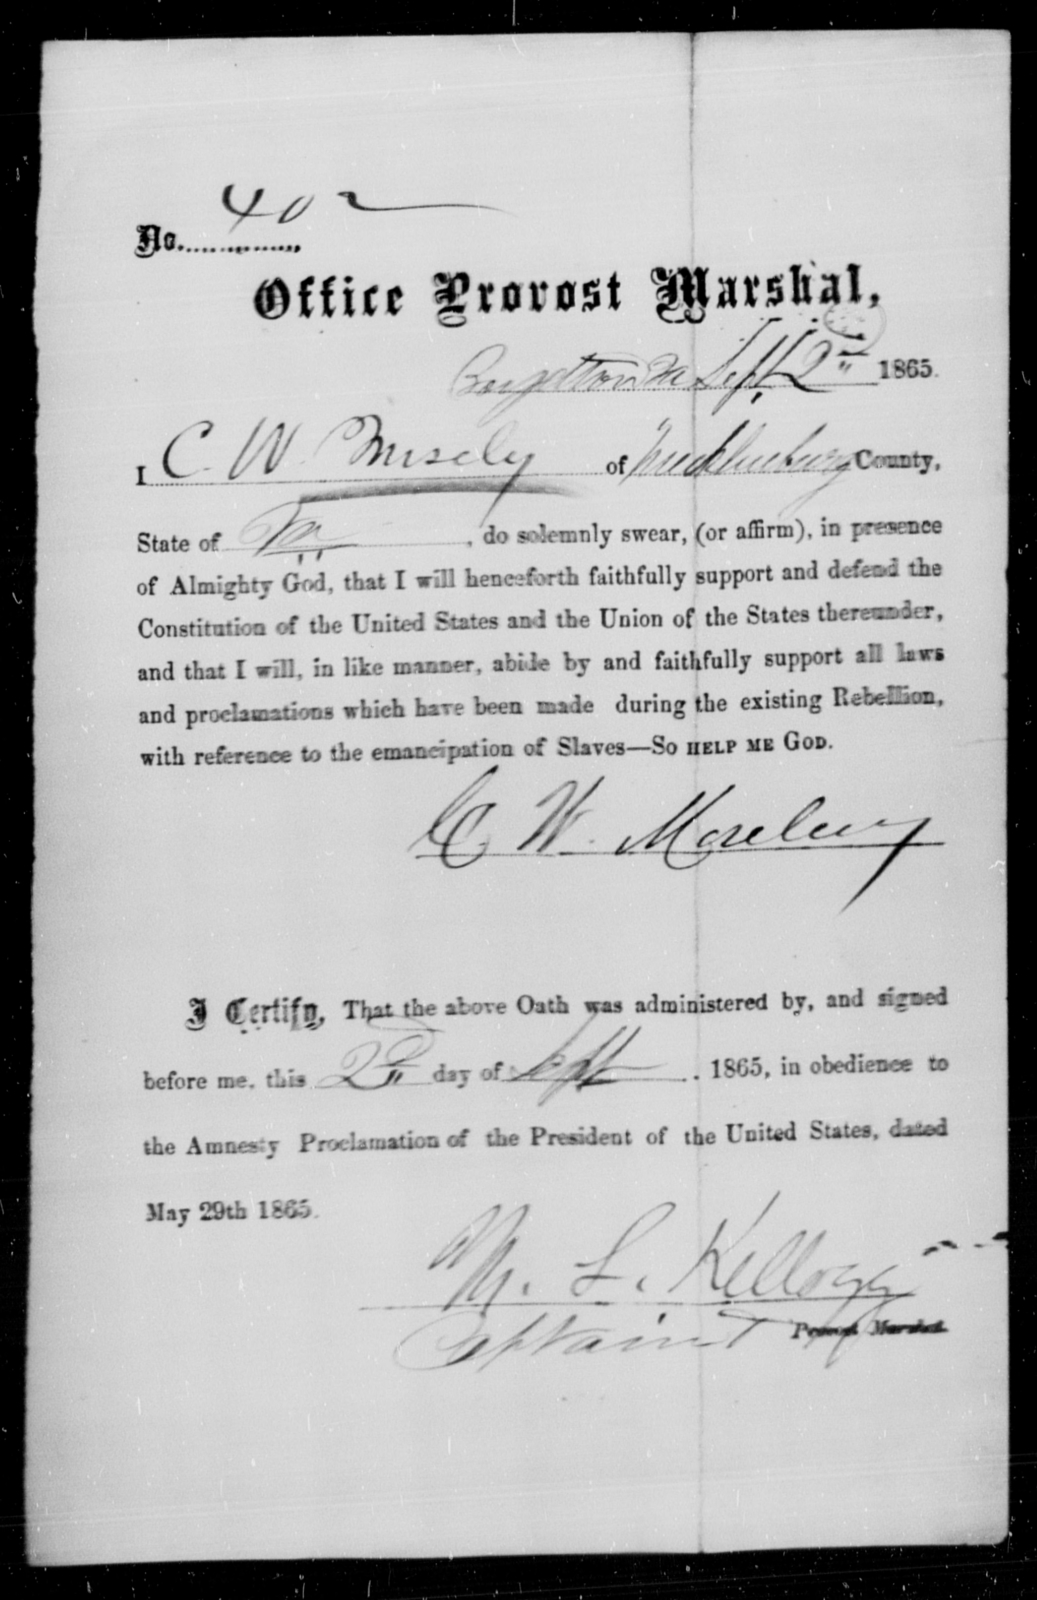 Mosely, C W - State: Virginia - Year: 1865